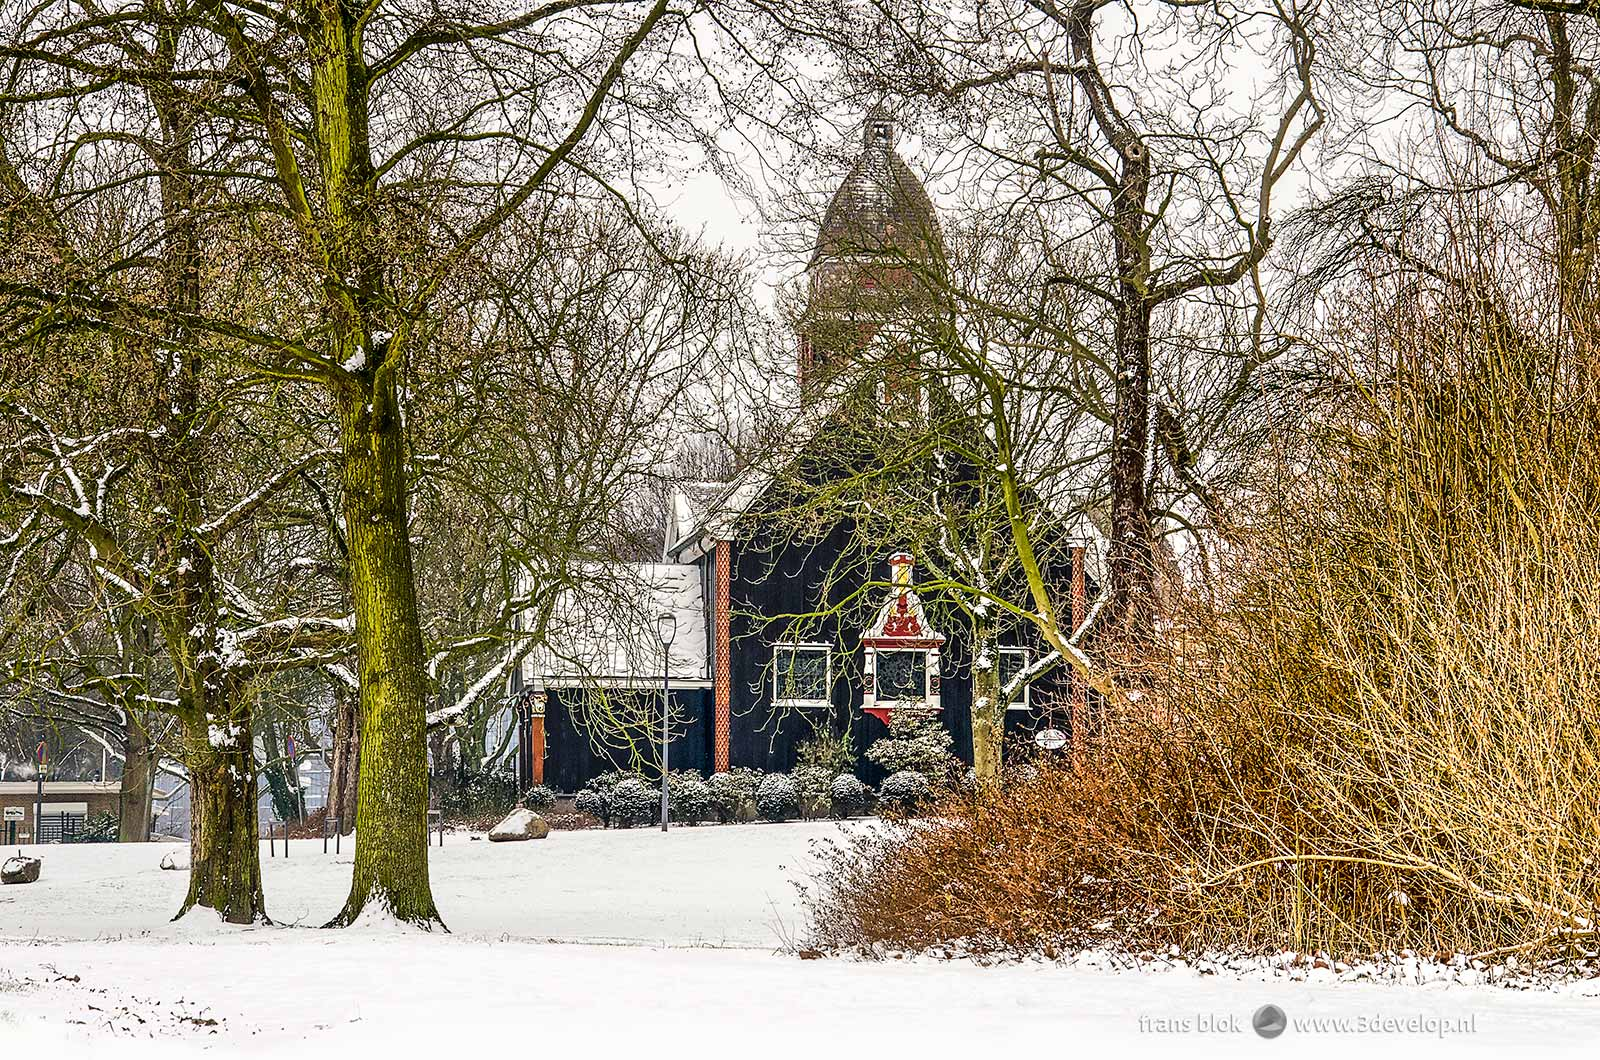 The Norwegian Sailor's Church in The Park in Rotterdam during one of the rare days with snow in the winter of 2017/2018